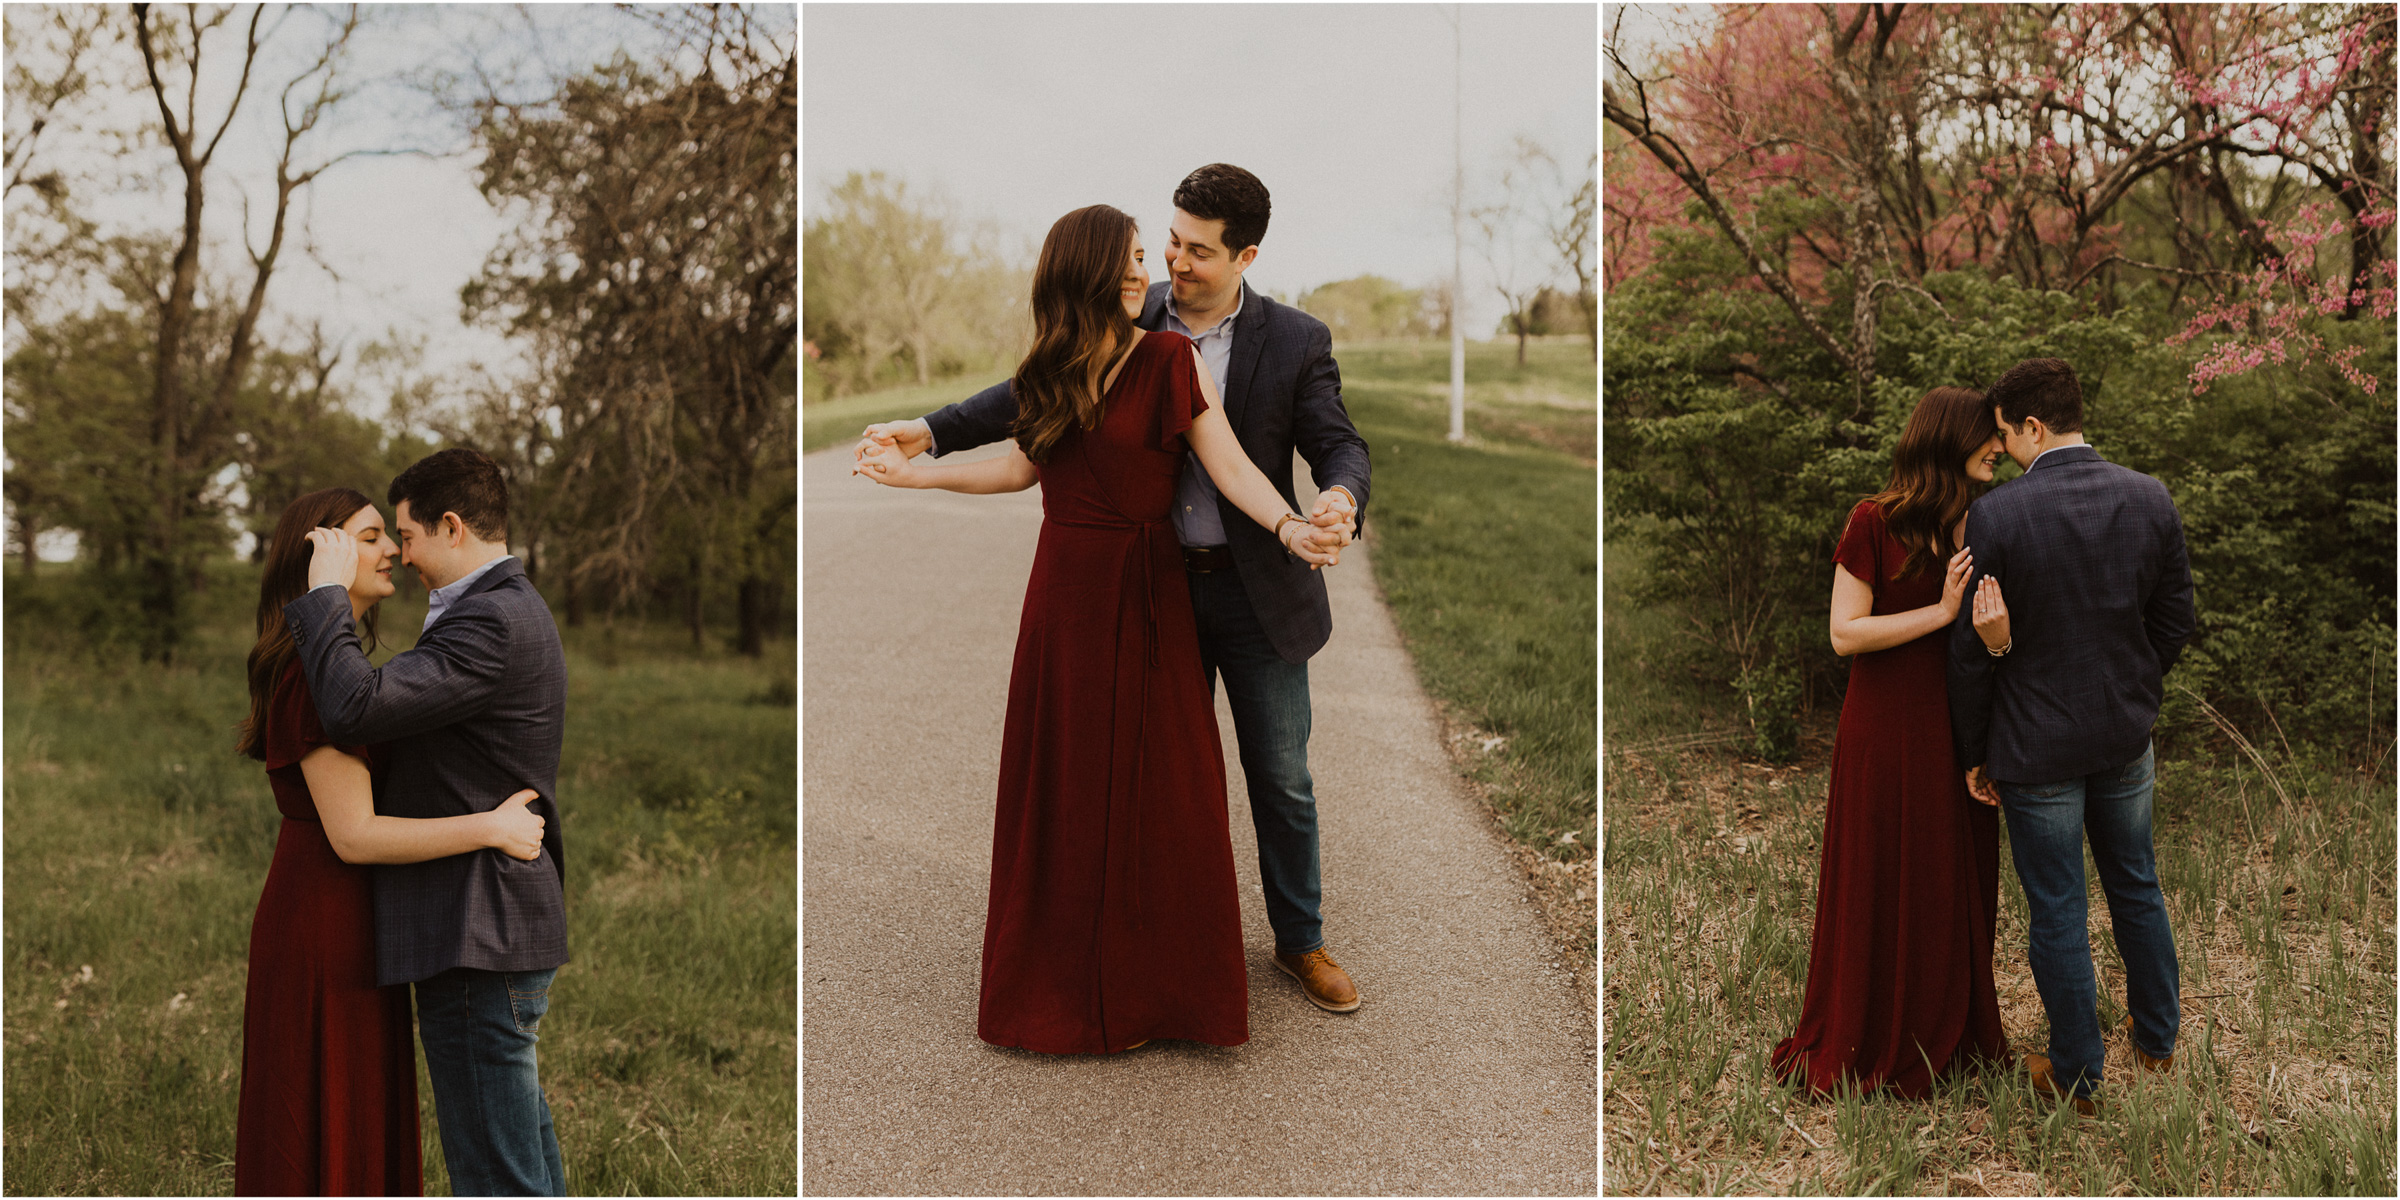 alyssa barletter photography shawnee mission park engagement session photographer spring fields-6.jpg